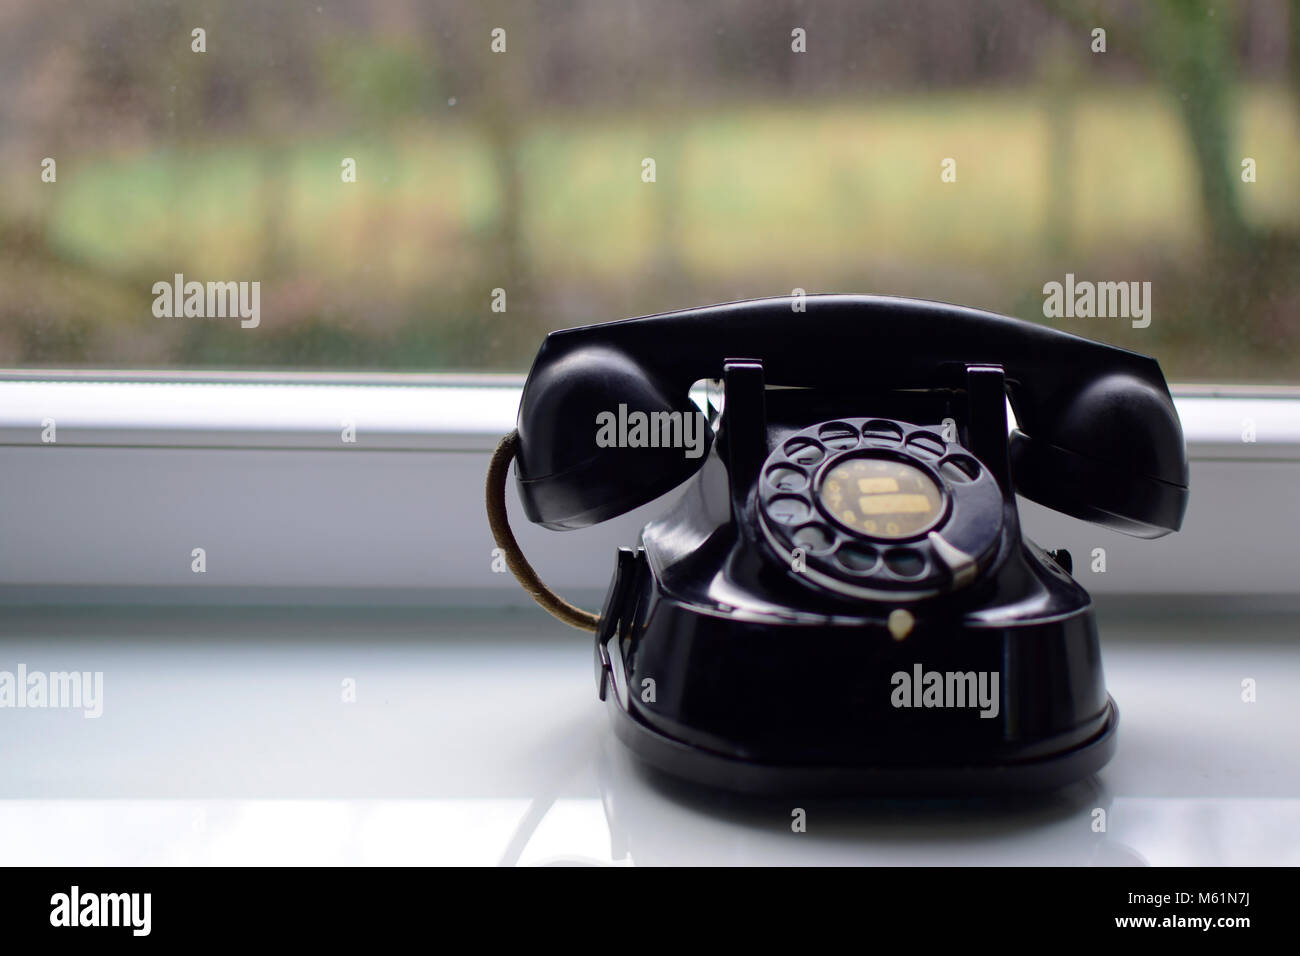 Vintage black telephone on the table near window with blurred background. - Stock Image